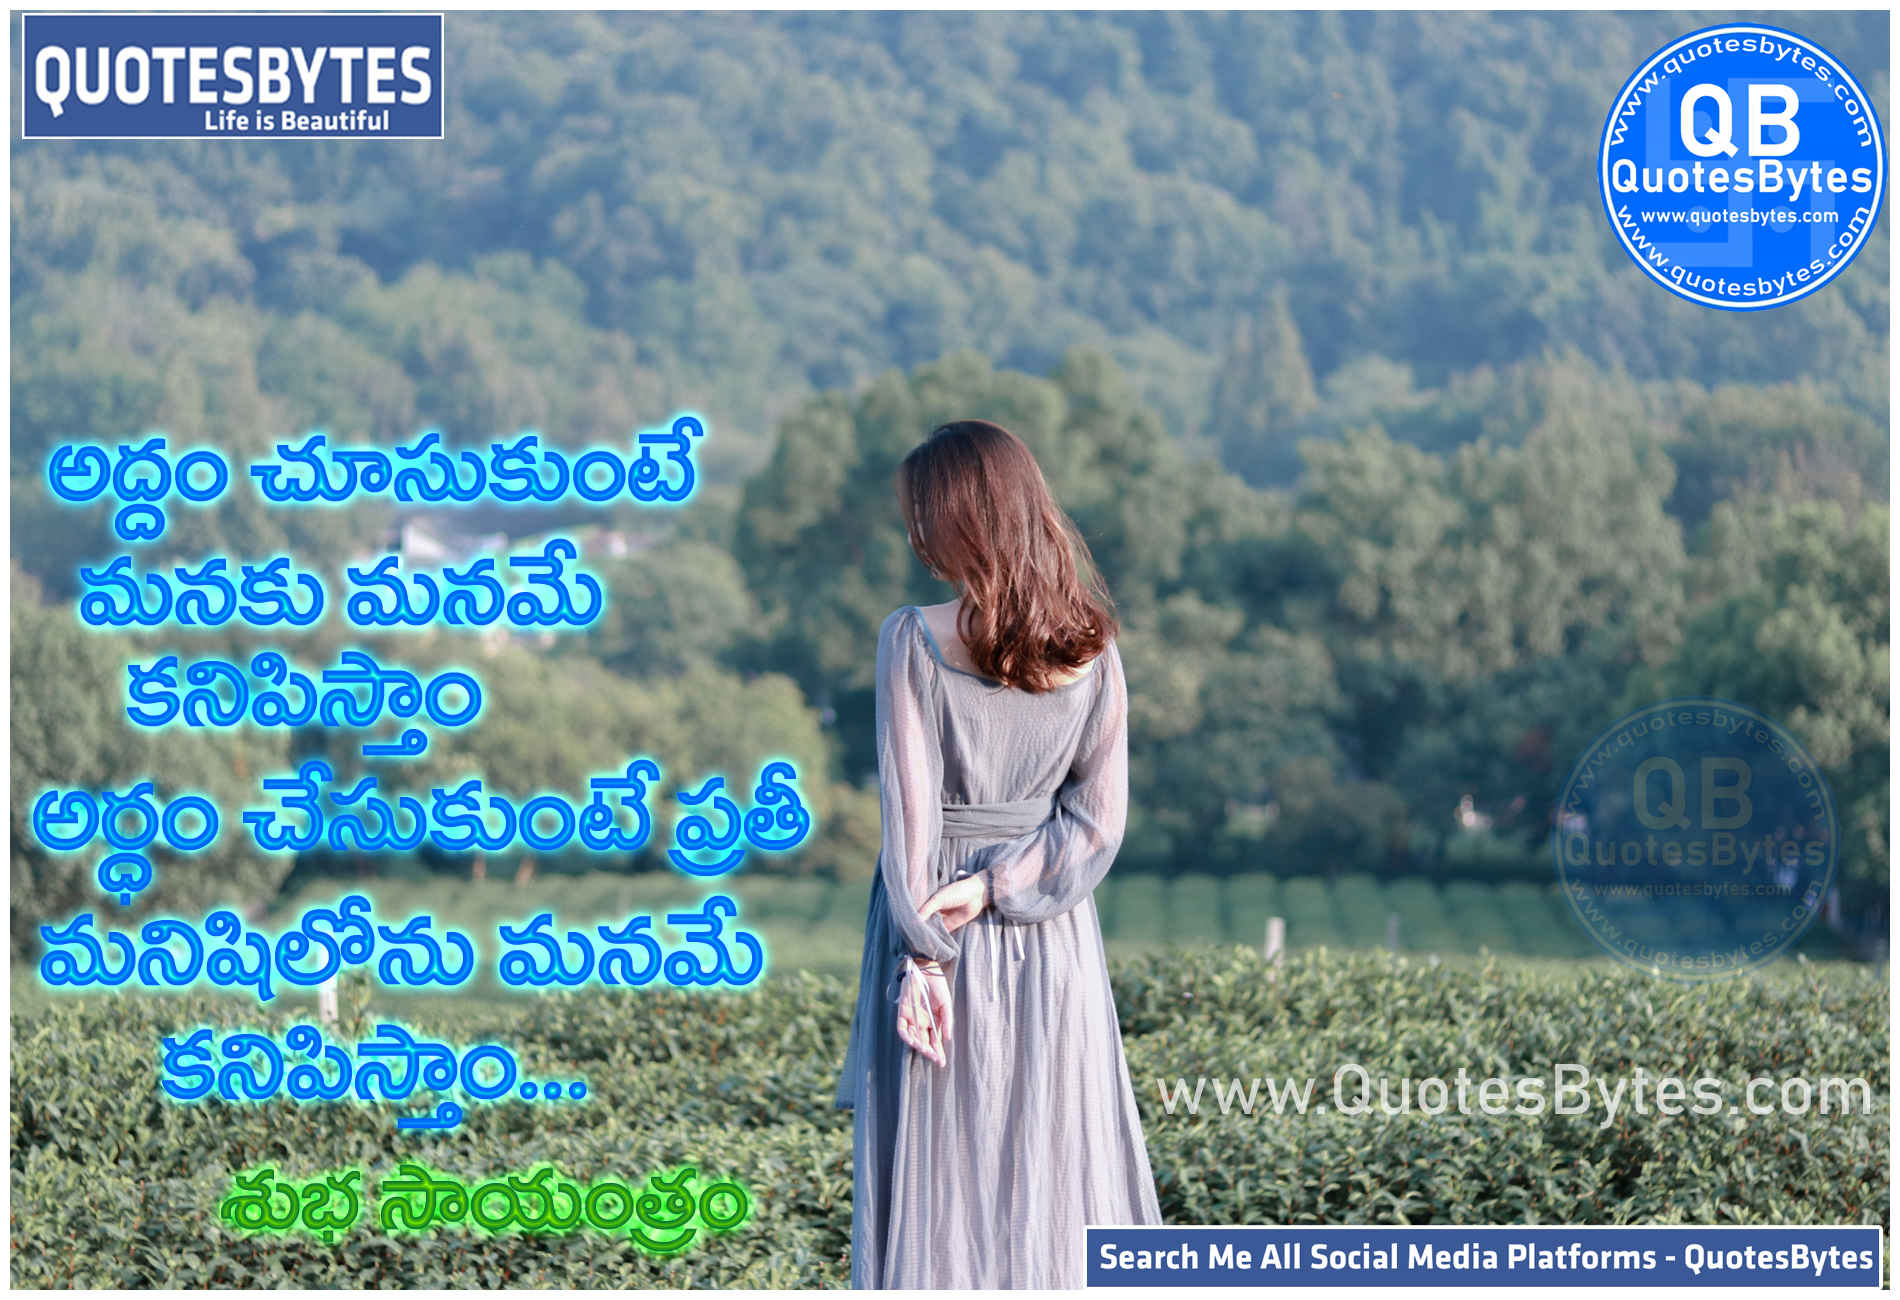 Latest Telugu Good Evening Quotations, telugu good Evening quotations, telugu good Evening quotations download, latest telugu good Evening images, good   Evening quotations in telugu, telugu good evening quotes, telugu good evening quotes changed my life forever, good evening telugu love images,Best inspirational Good Evening quotes in Telugu, The first time I heard about telugu good evening quotes it changed everything,Best Quotes About Life,quotesbytes,inspirational quotes, Life Quotes — Inspiring the Happy, Good and Funny in Life,motivationalquotes,kannada motivational words,life quotes in telugu,motivational quotes in tamil,motivational quotes in kannada,subhodayamtelugu,goodEvening motivational quotes in tamil,truth quotes images in hindi,motivational quotes in malayalam,love quotes in telugu,images of life lessons quotes,victoryquotes,telugu good night kavithalusms,funnytelugukavithalu,inspirational quotes in telugu,subhodayamimages,subhodayamteluguimages,motivational quotes in telugu,love quotes images kannada,goodnight images malayalam,inspirational quotes in telugu with images,good night kannadathoughts,success quotes in telugu,inspirational quotes in malayalam,marriage wishes in teluguquotes,motivational quotes telugu,tamil inspirational quotes,goodEveningmalayalamsms,funnykavithalu in telugu,best quotes in telugu,life motivational quotes in tamil,moral quotes in telugu,subhodayam photos,telugu good evening quotes changed my life forever, MOTIVATIONAL QUOTES TO REACH YOUR POTENTIAL EACH DAY, Inspirational Motivational Quotes To Inspire You To Greatness,motivational quotes tamil,Teluguanimutyalu, Telugu sooktulu, shubhodayam greetings wishes messages in telugu,bestteluguGooodEvening success Quotes with goal setting sms text messages for whatsapp,goodEvening god images in telugu,lovequotations,Latest Telugu good Evening quotations for friends about win life goal settings,Quotes ideas | quotes, great quotes, inspirational quotes, telugu,malayalam love quotes 